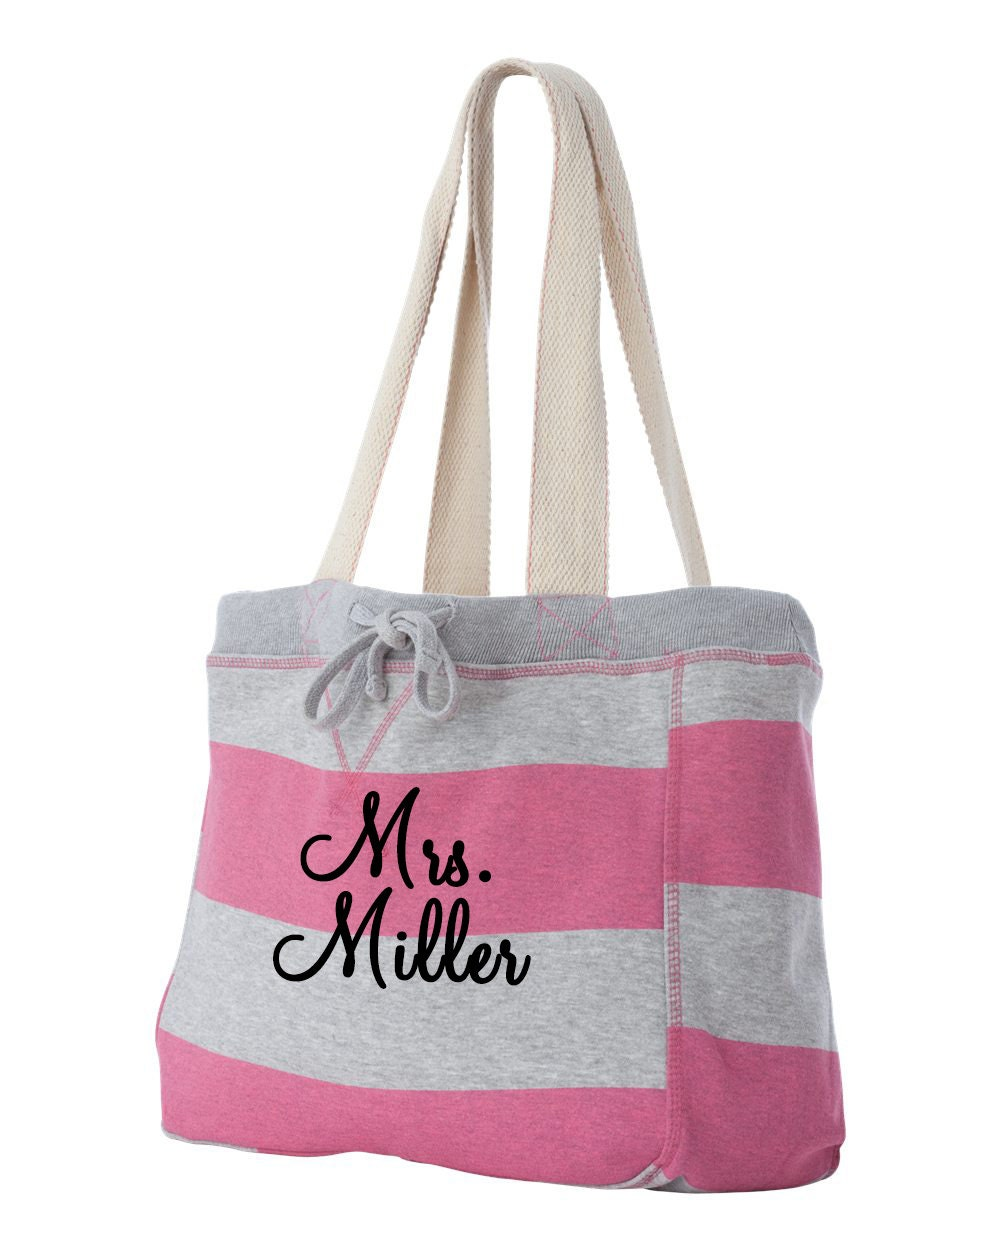 Personalized monogrammed beach bag tote